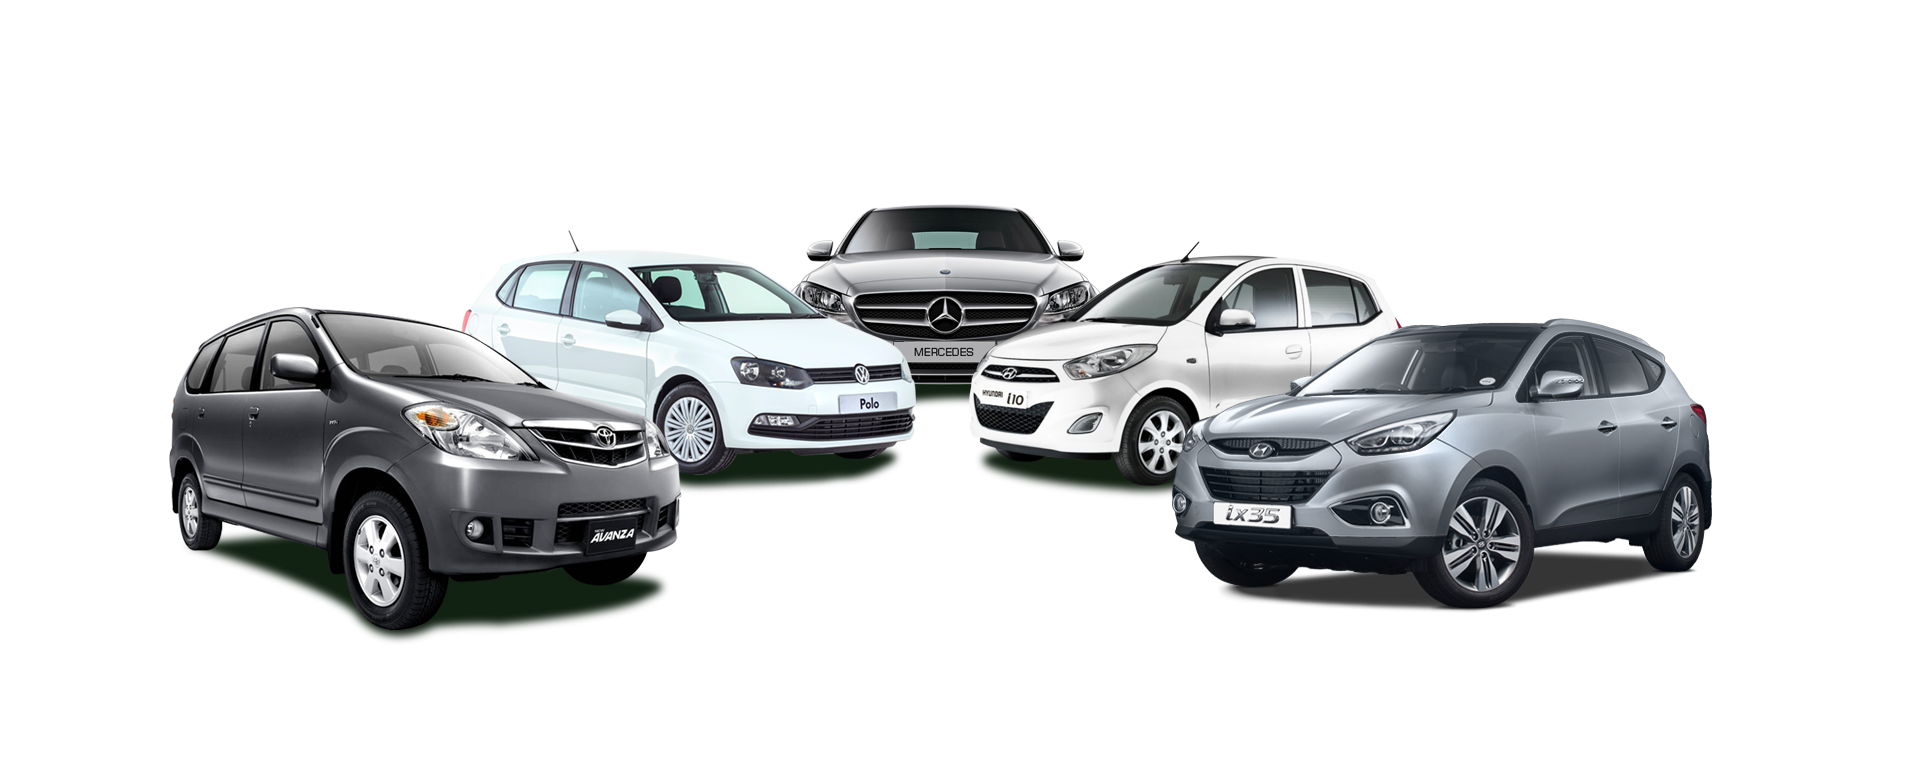 Book Long-Haul Car Hire Online At Best Rates.